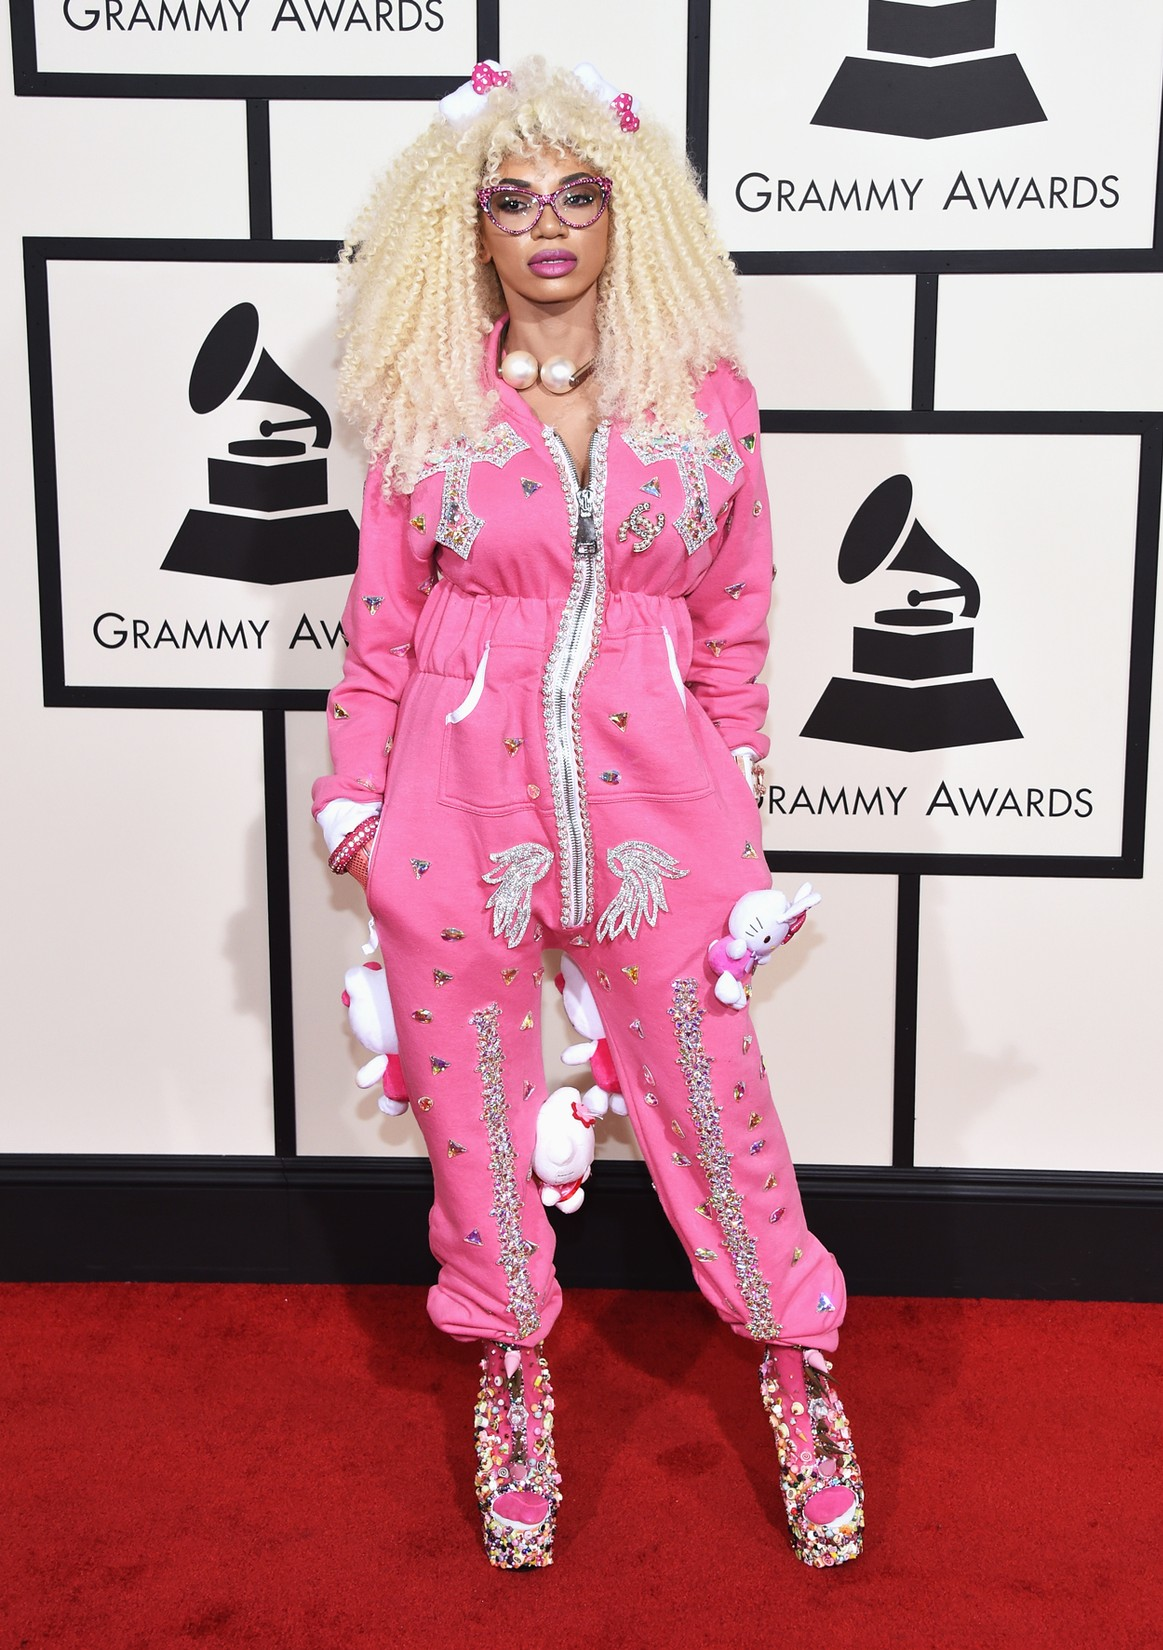 Dencia came to the 2016 Grammys in a wacky onesie covered in Hello Kitty dolls.